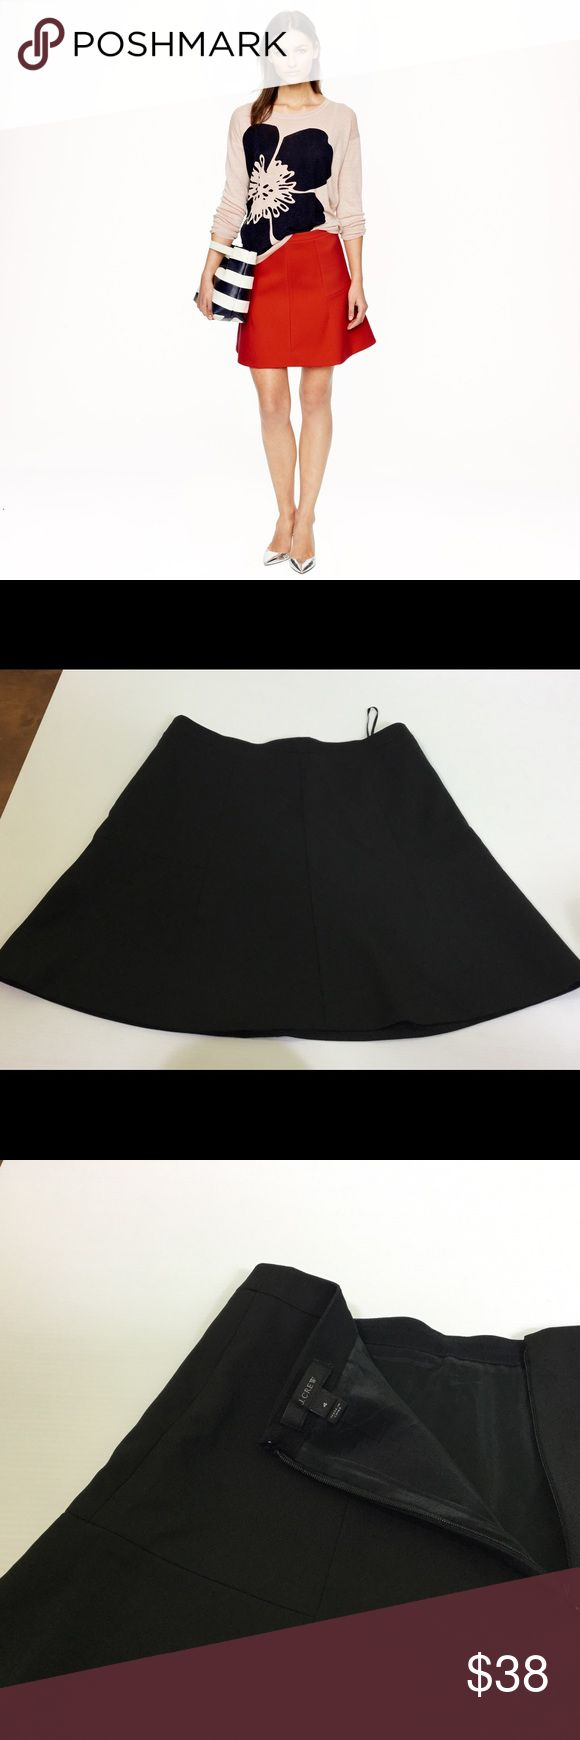 J. Crew classic fluted crepe skirt in black. Sz. 4 In a flattering fluted shape, this structured but swingy skirt is finished with a subtle lustre that gives it endless wear possibilities (work, parties, brunch, you name it). Size 4. J. Crew Skirts Mini